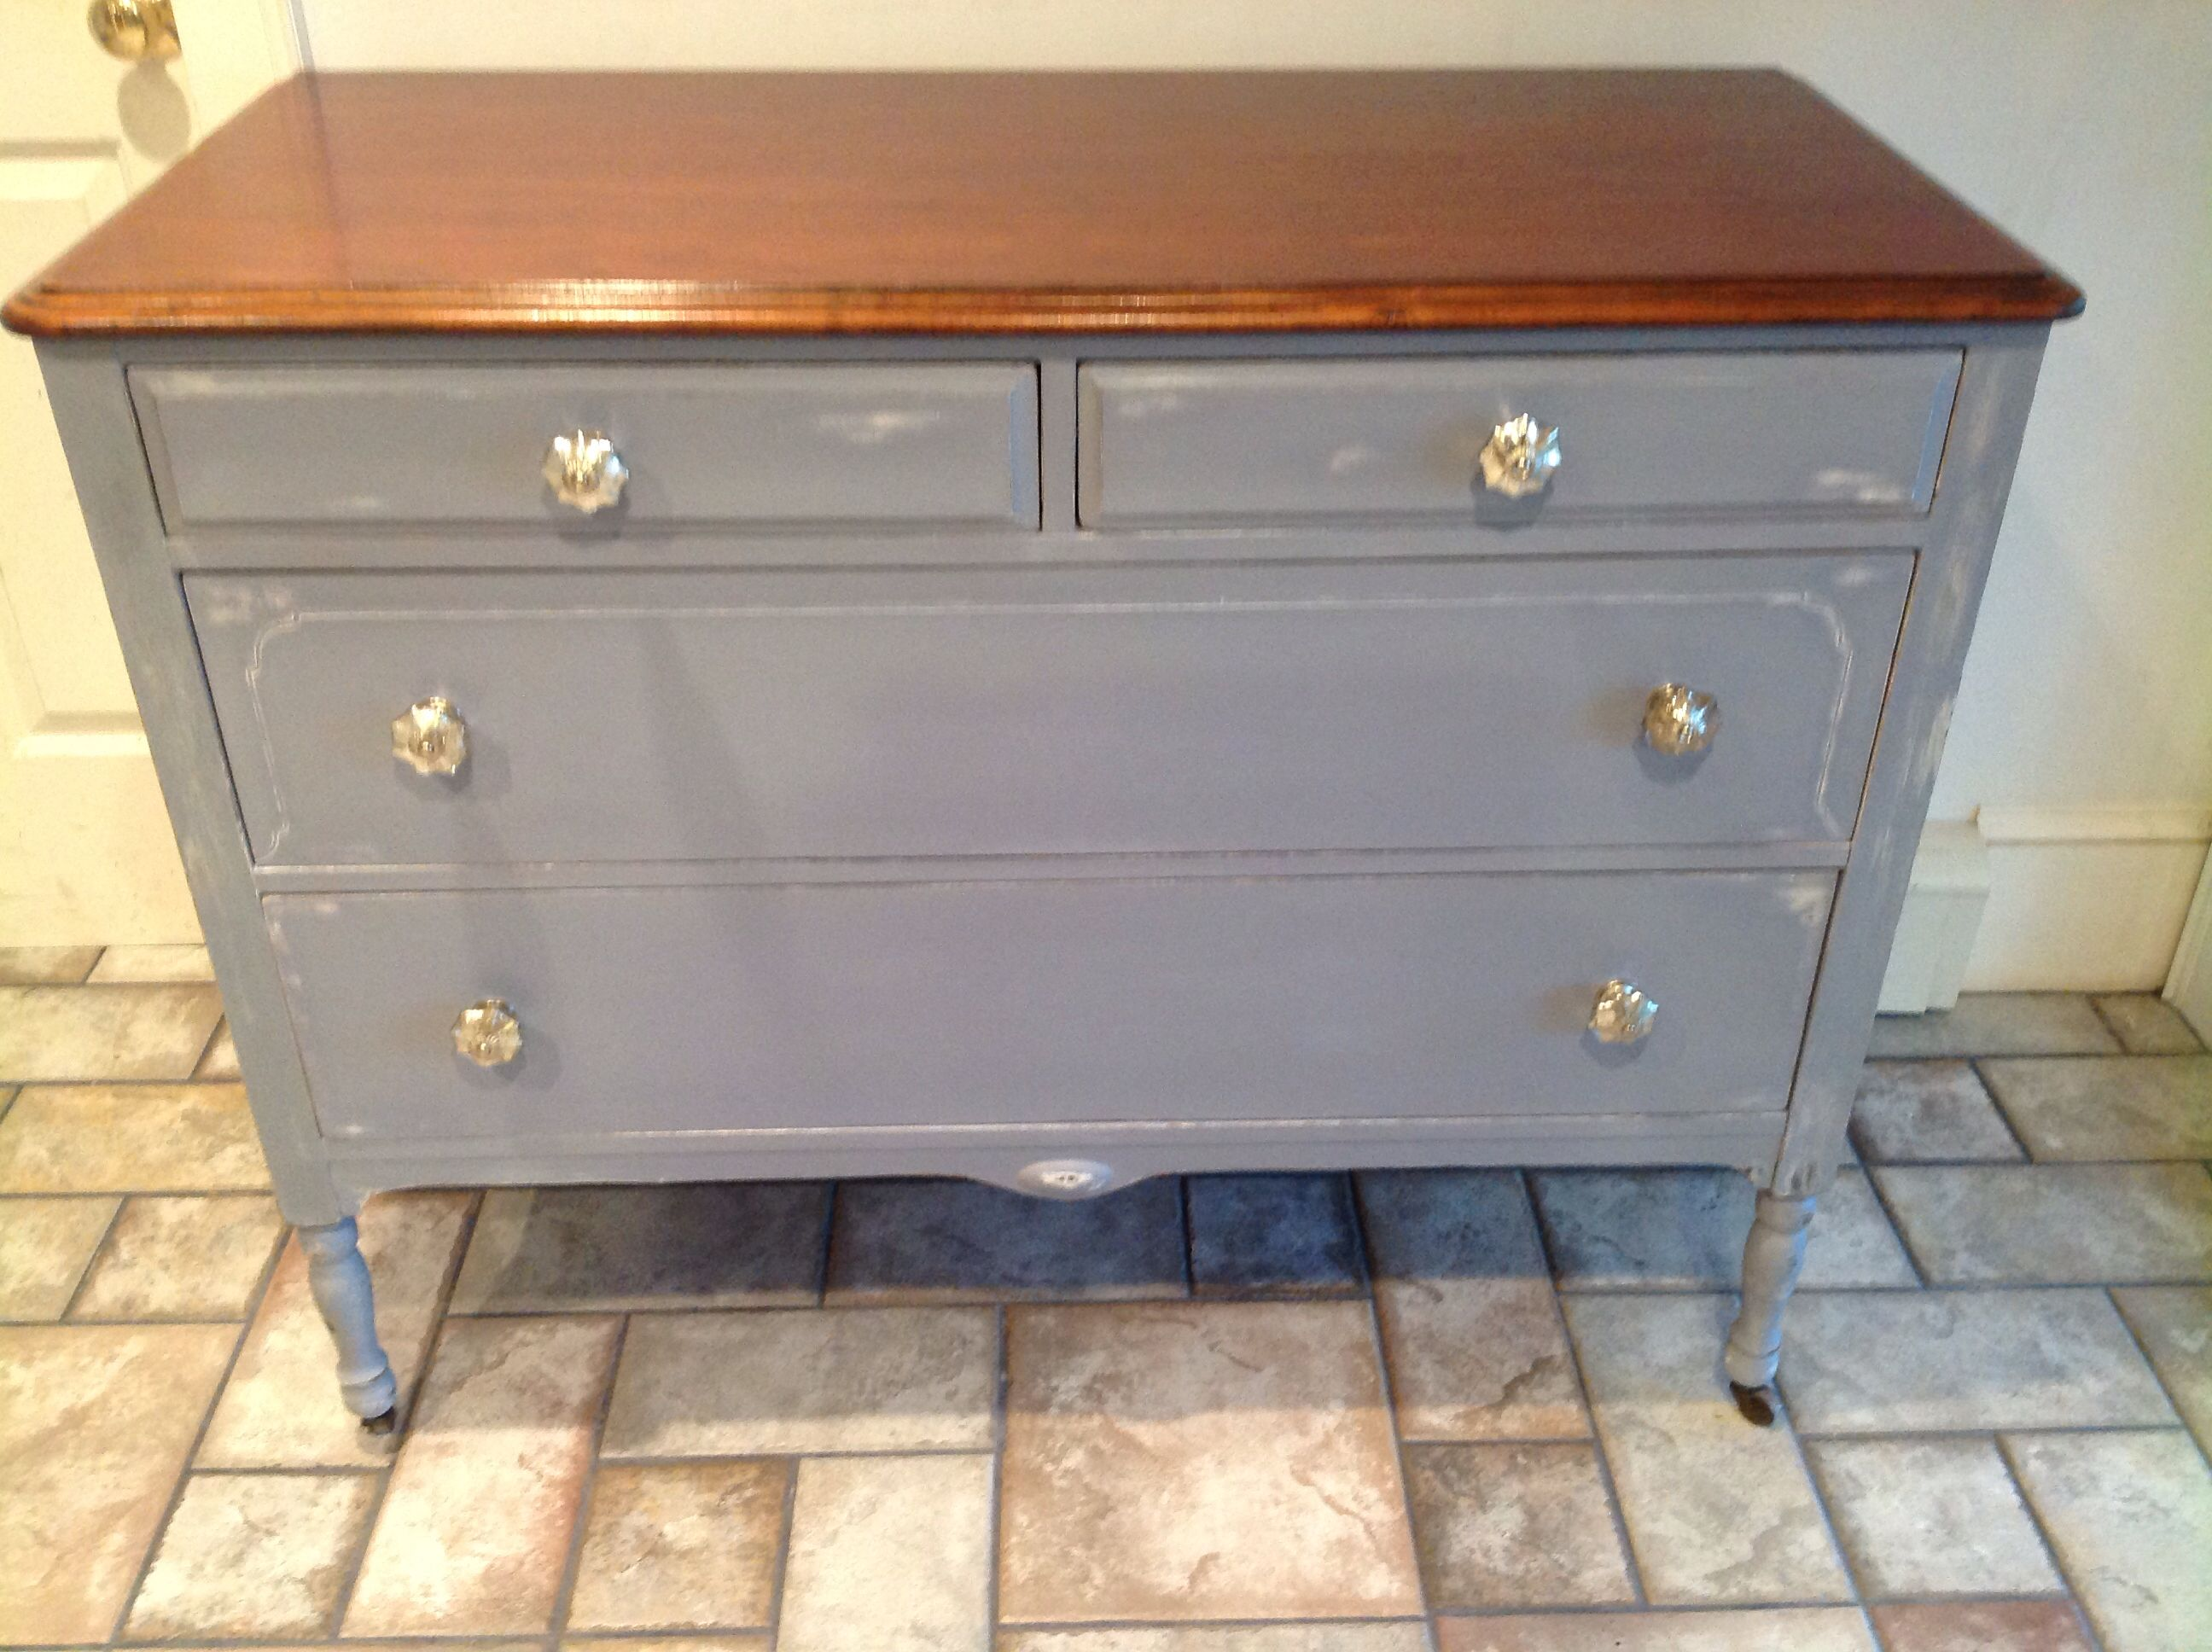 Old violet over old white with glass mercury knobs furniture